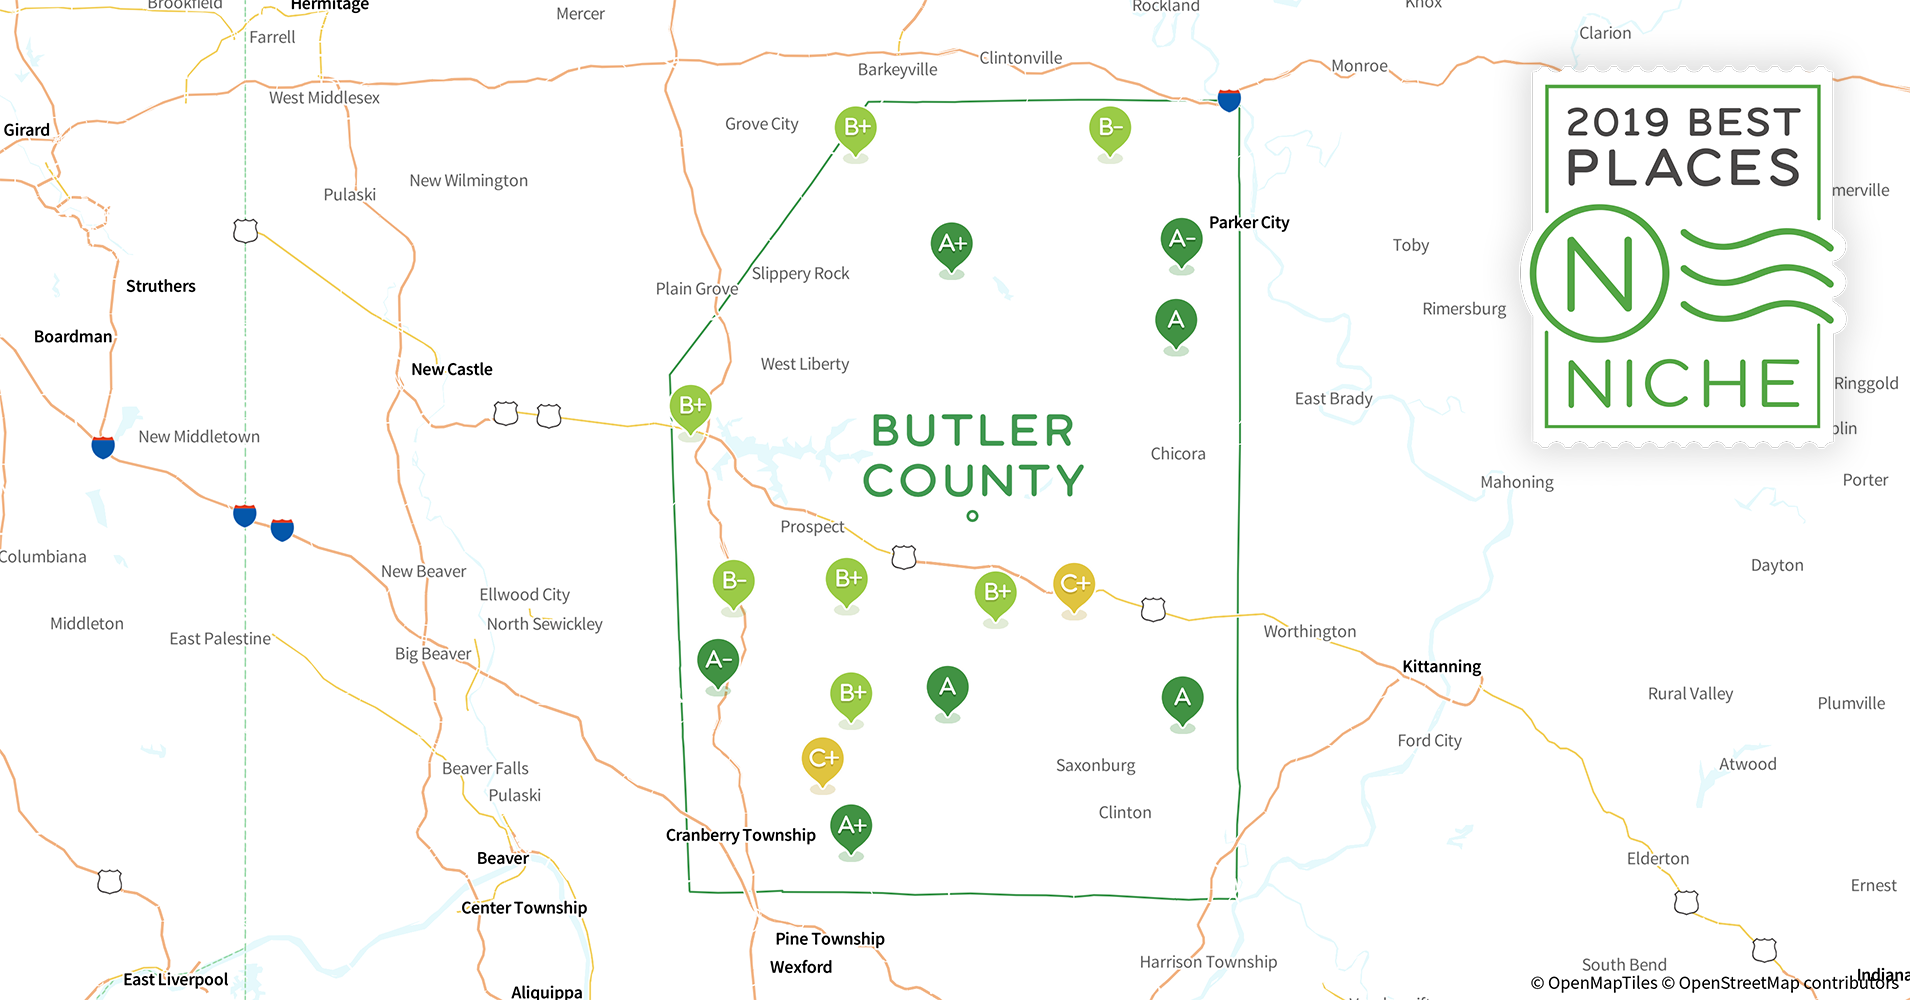 2019 Best Places to Live in Butler County, PA - Niche Zilenople Map Of Pennsylvania Counties And Cities on